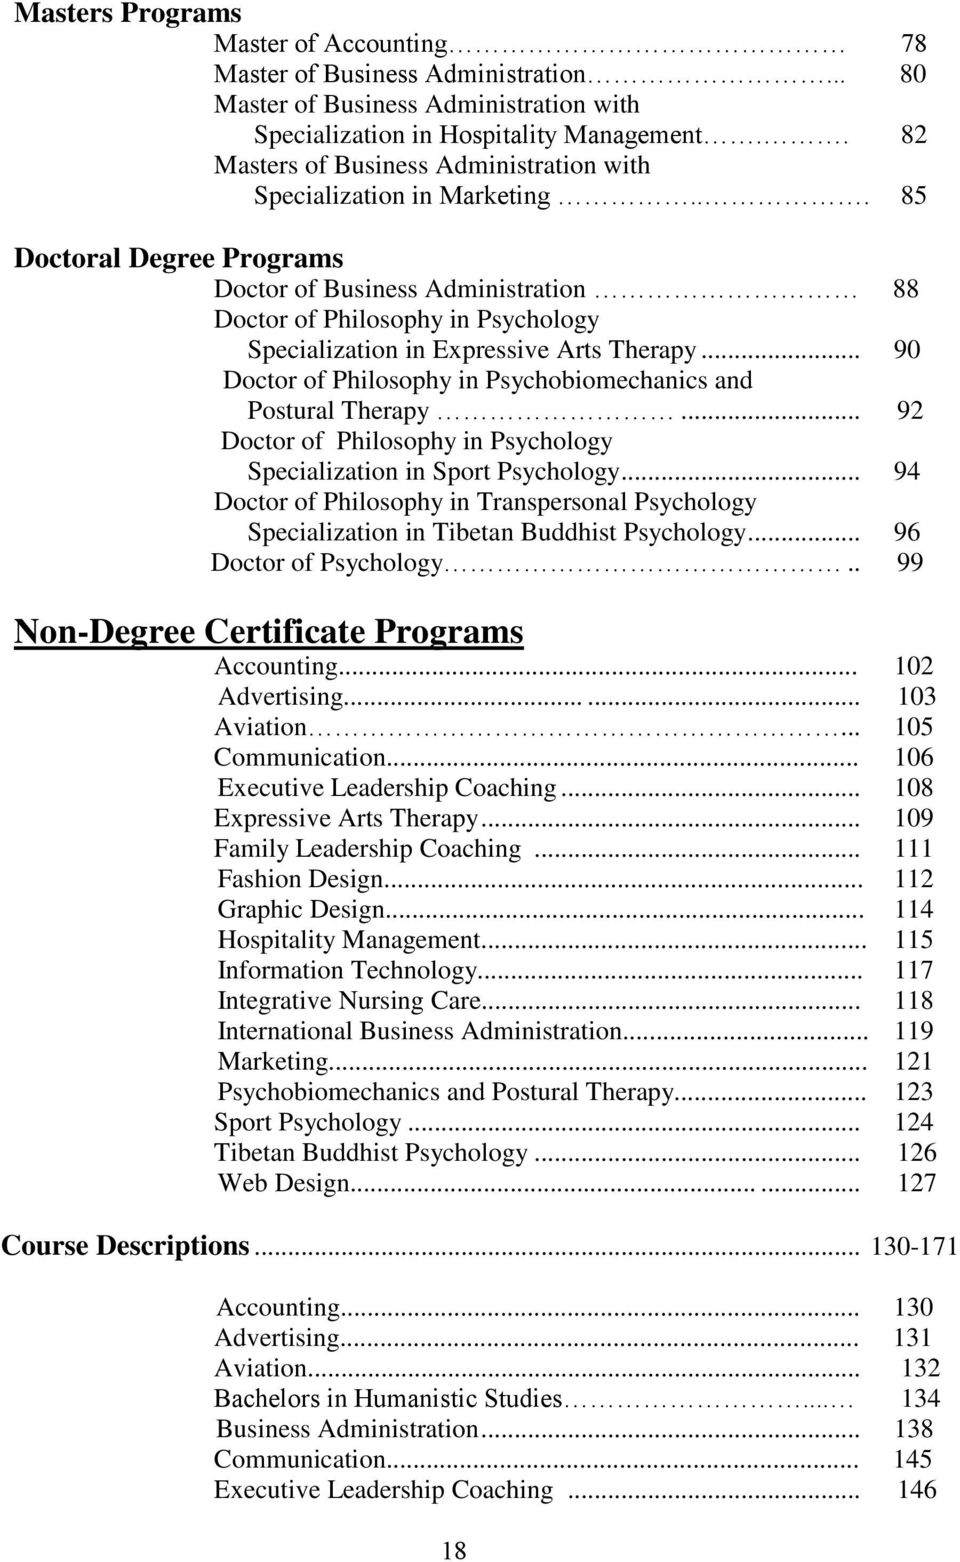 Expressive Arts Therapy Certificate Programs B Bp 2018